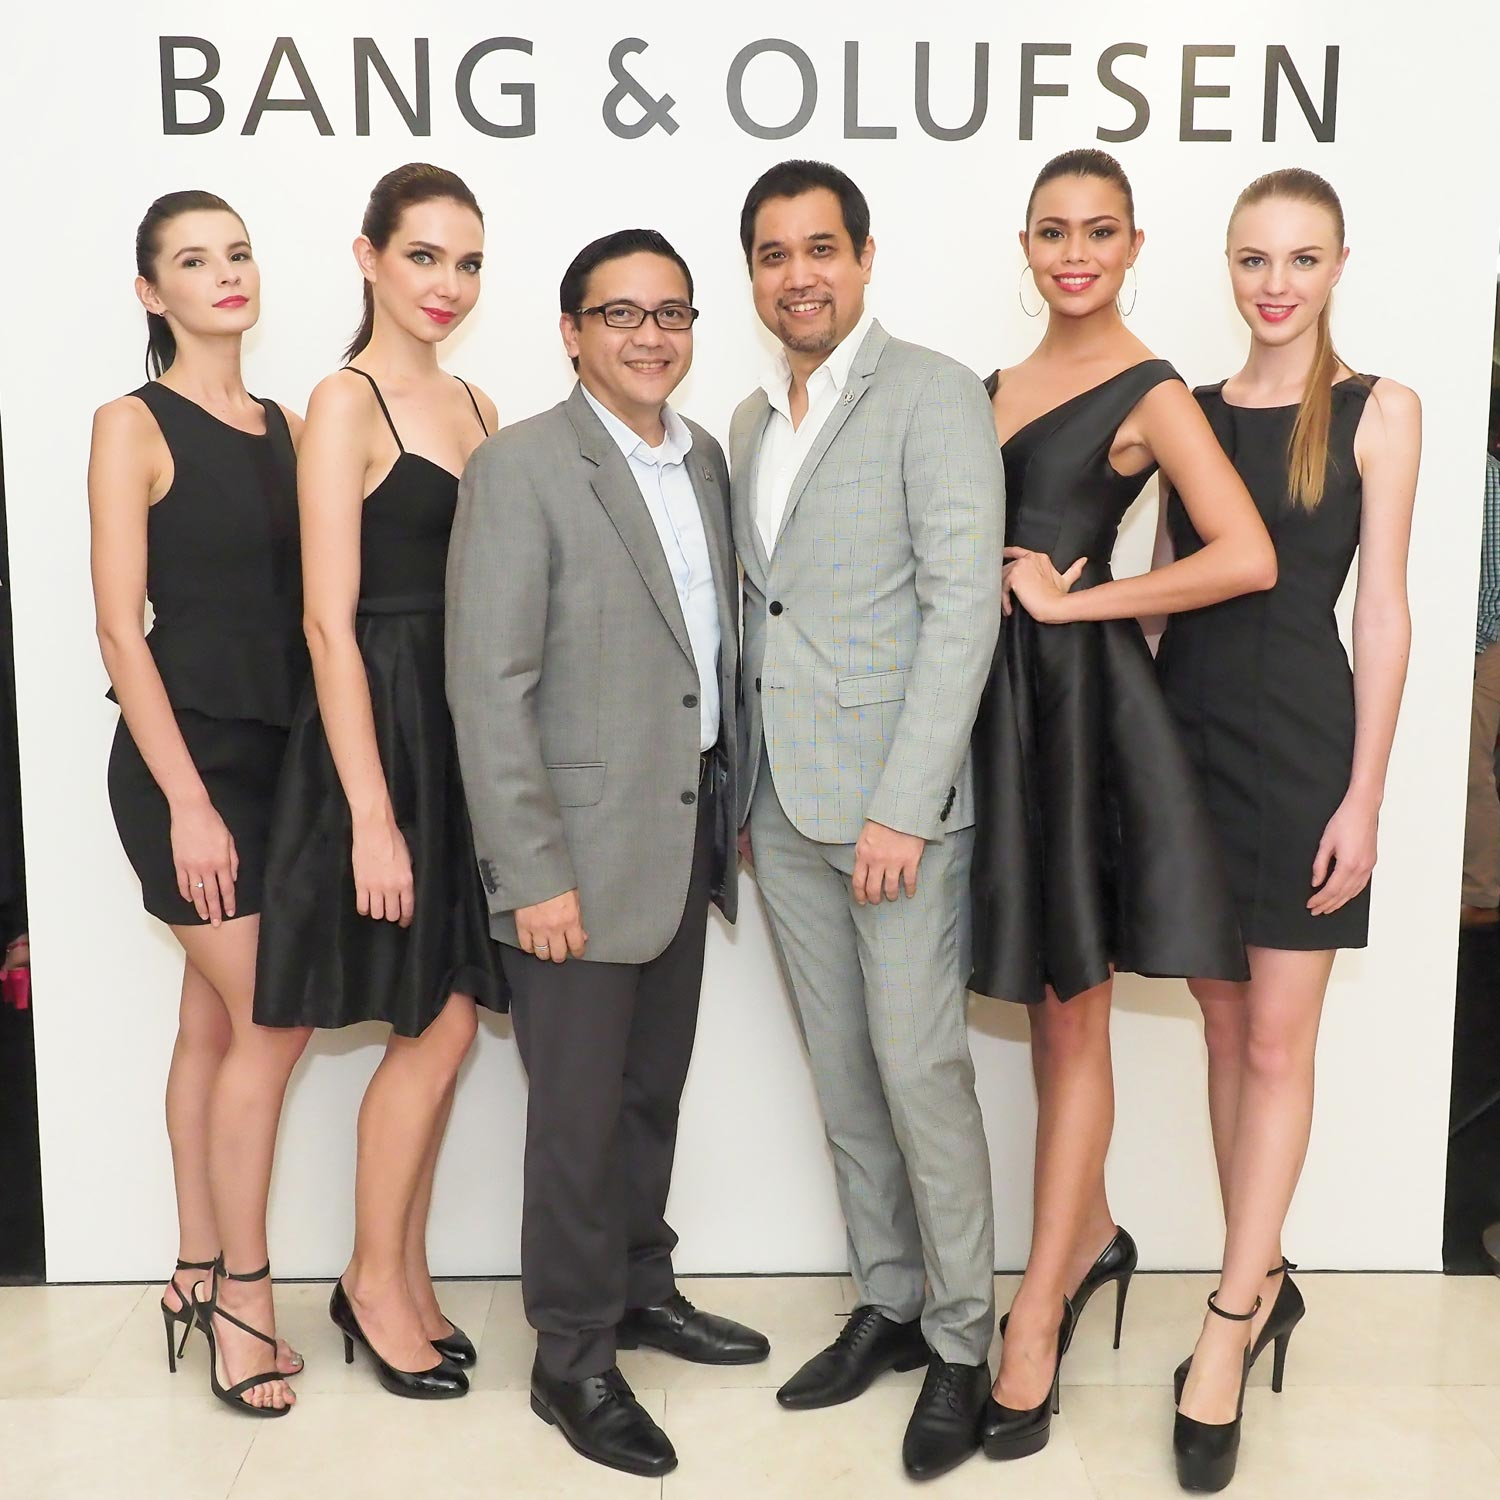 Uncovering What's In-Store for 2018 with Bang & Olufsen in Kuala Lumpur 2